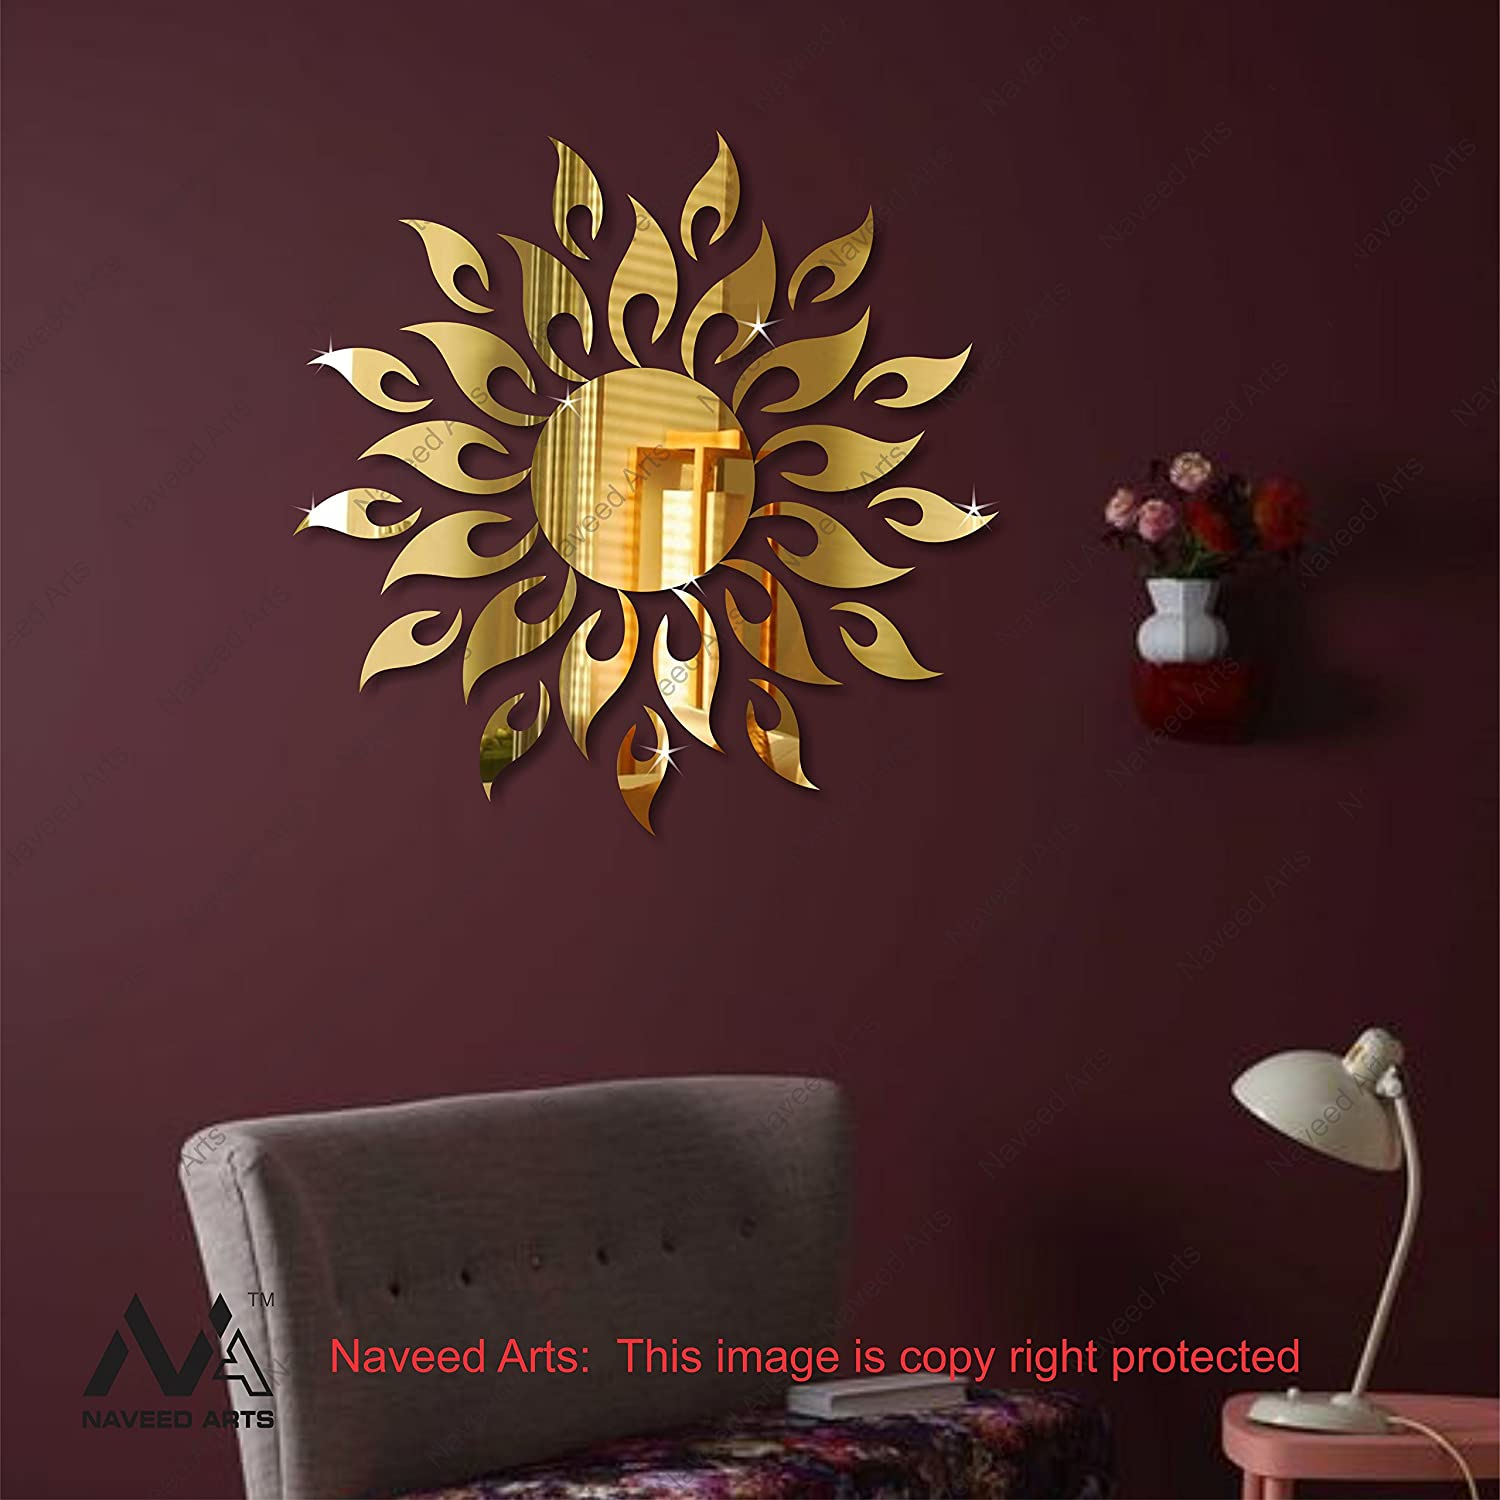 Buy Naveed Arts JB099G 3D Acrylic Sun Mirror Decor Wall Sticker 2Ft